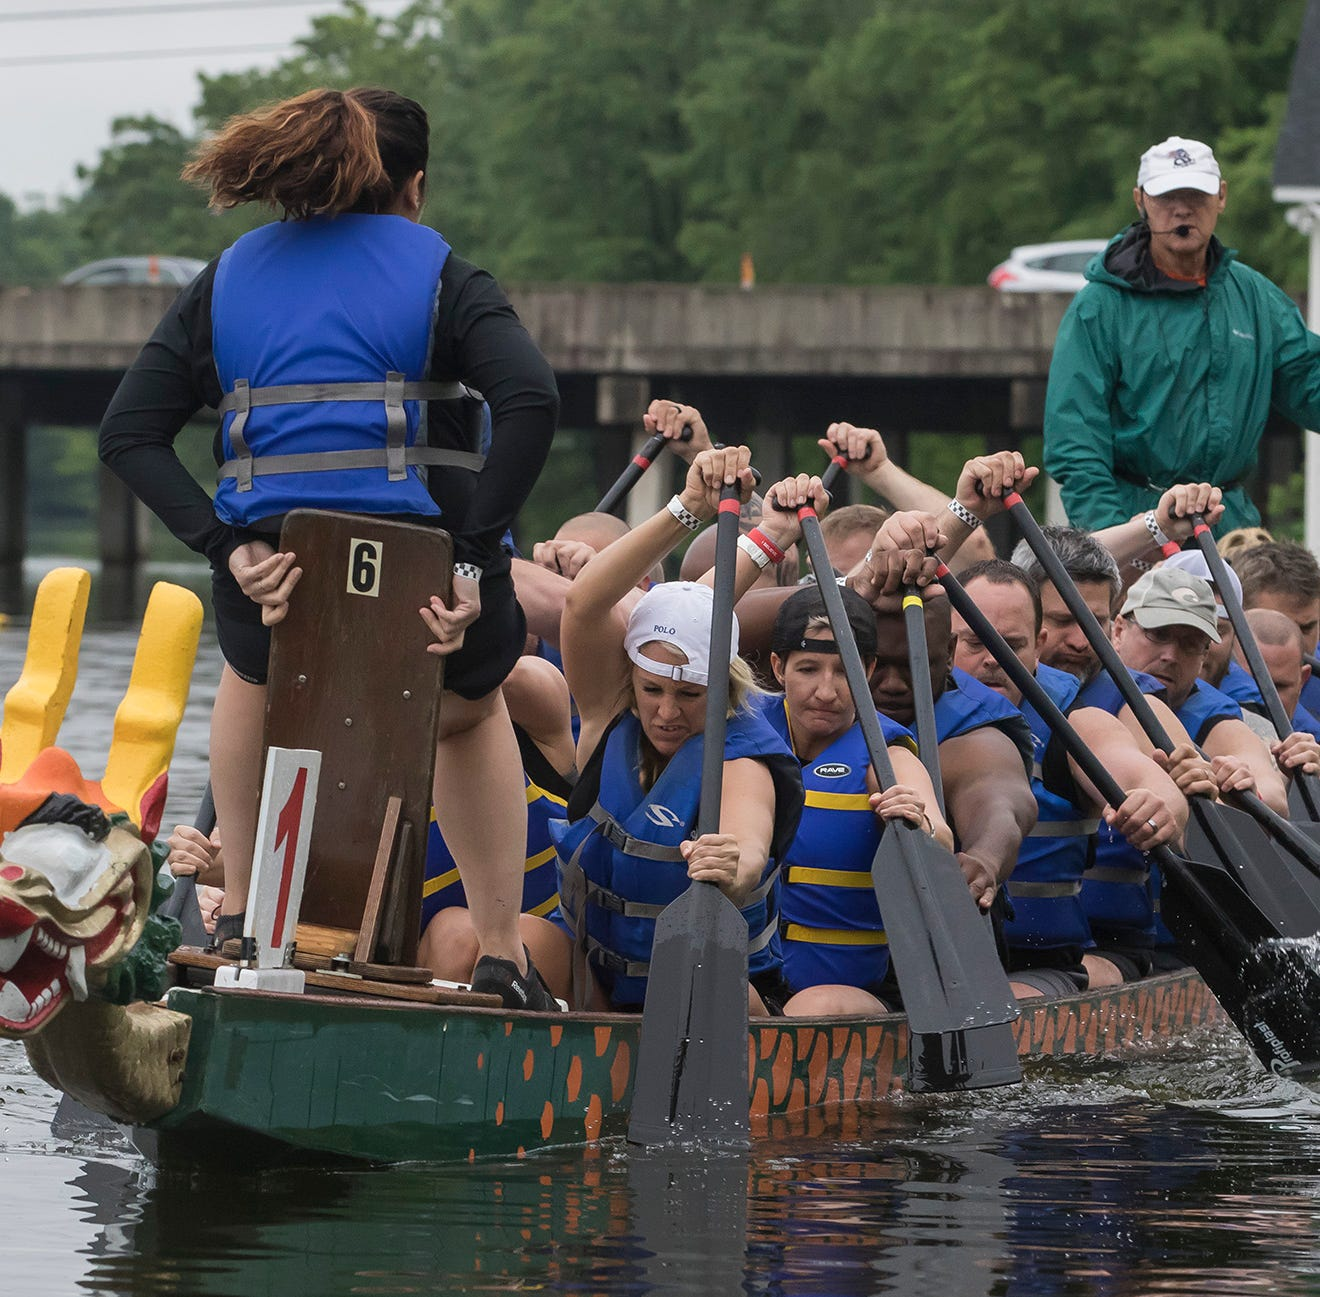 Dragons Streaked the Bayou during Boat Races